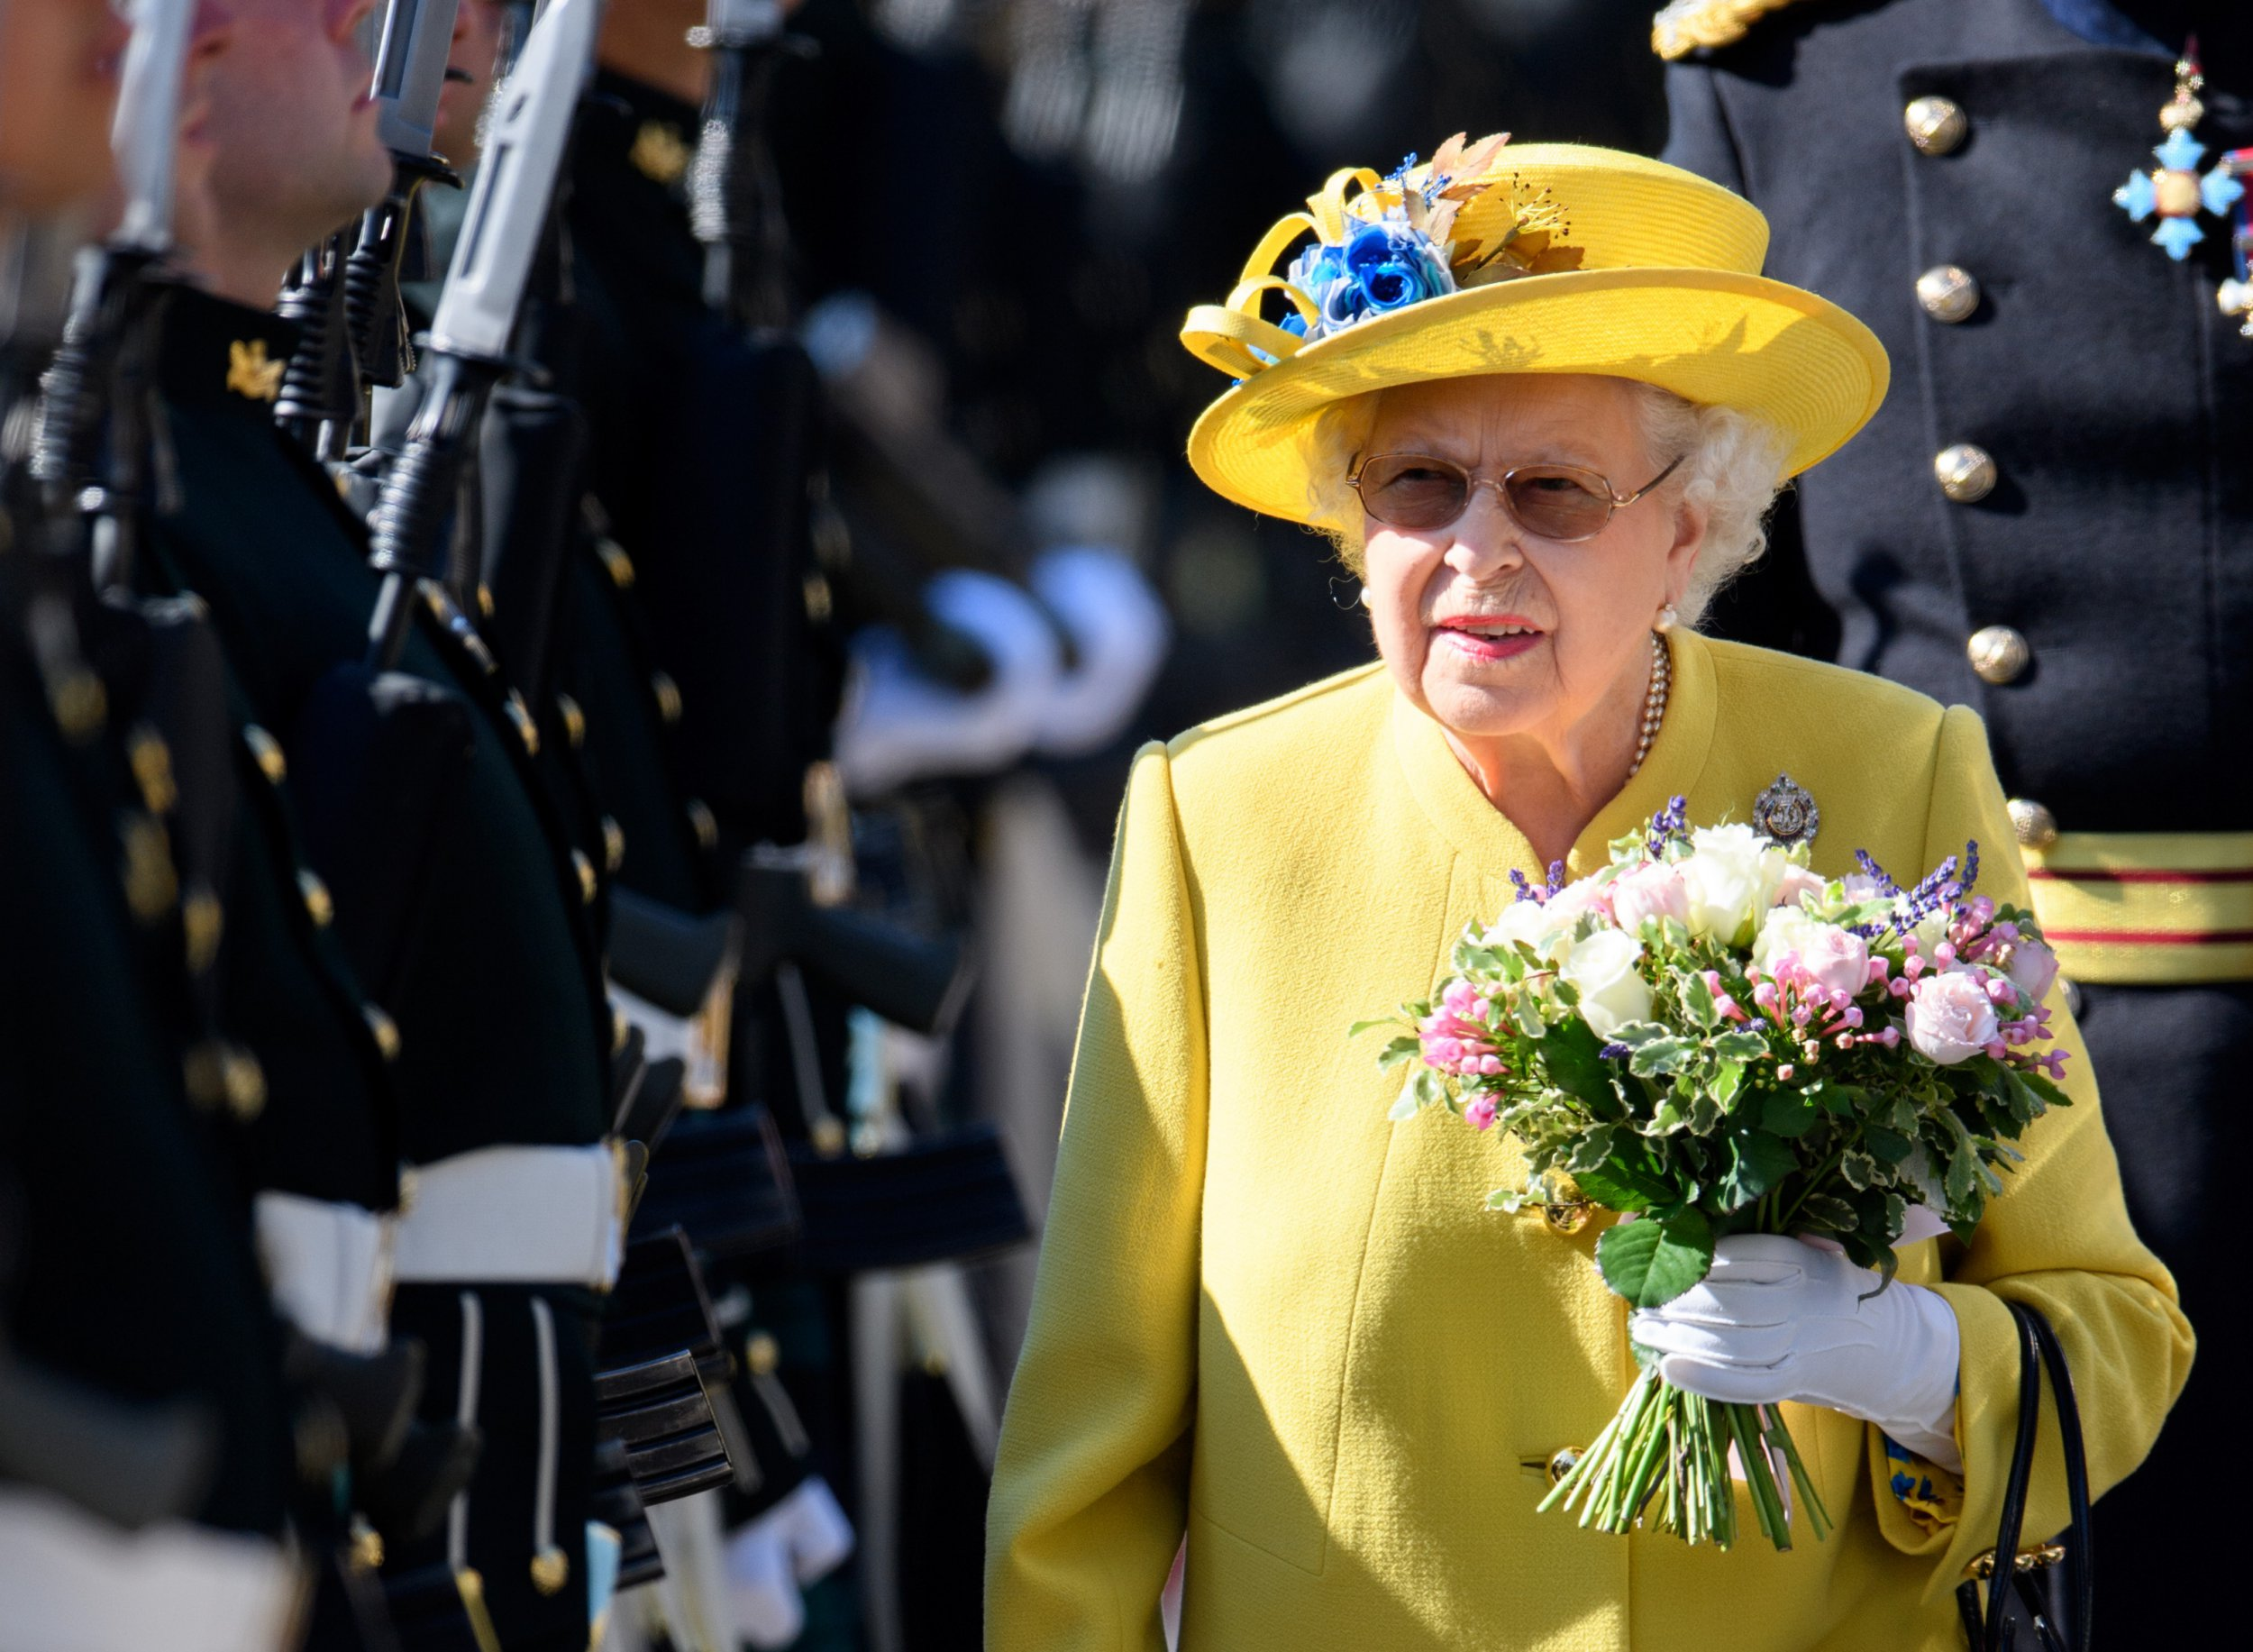 Mandatory Credit: Photo by Tim Rooke/REX/Shutterstock (9732871aa) Queen Elizabeth II Ceremony Of The Keys at the Palace of Holyroodhouse, Edinburgh, Scotland - 02 Jul 2018